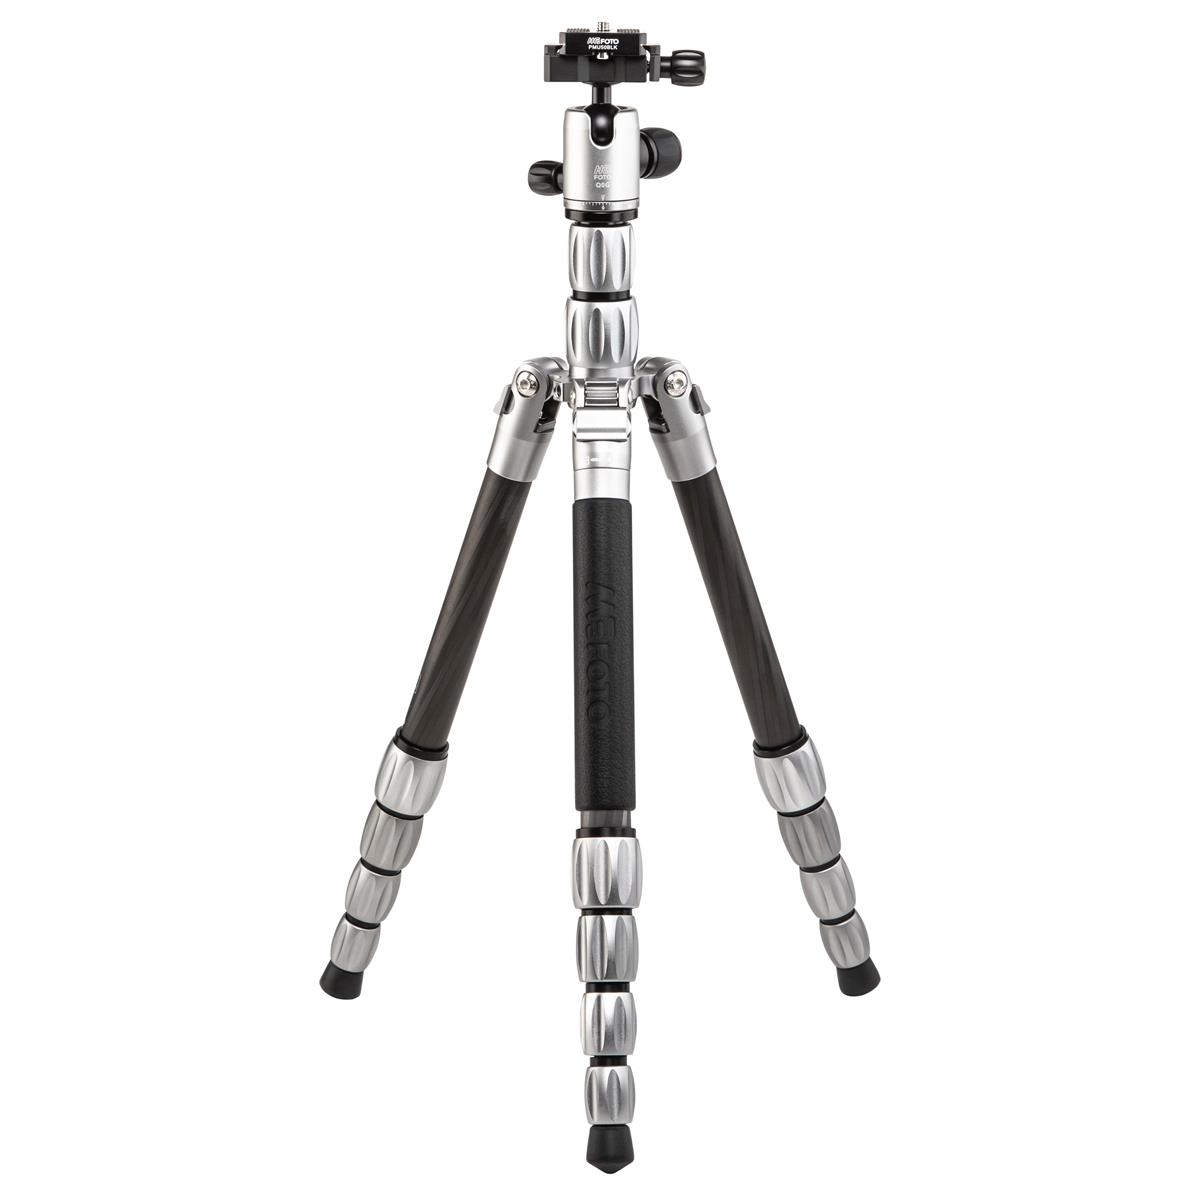 MeFOTO BackPacker S Travel Tripod  (Titanium, Carbon Fiber)